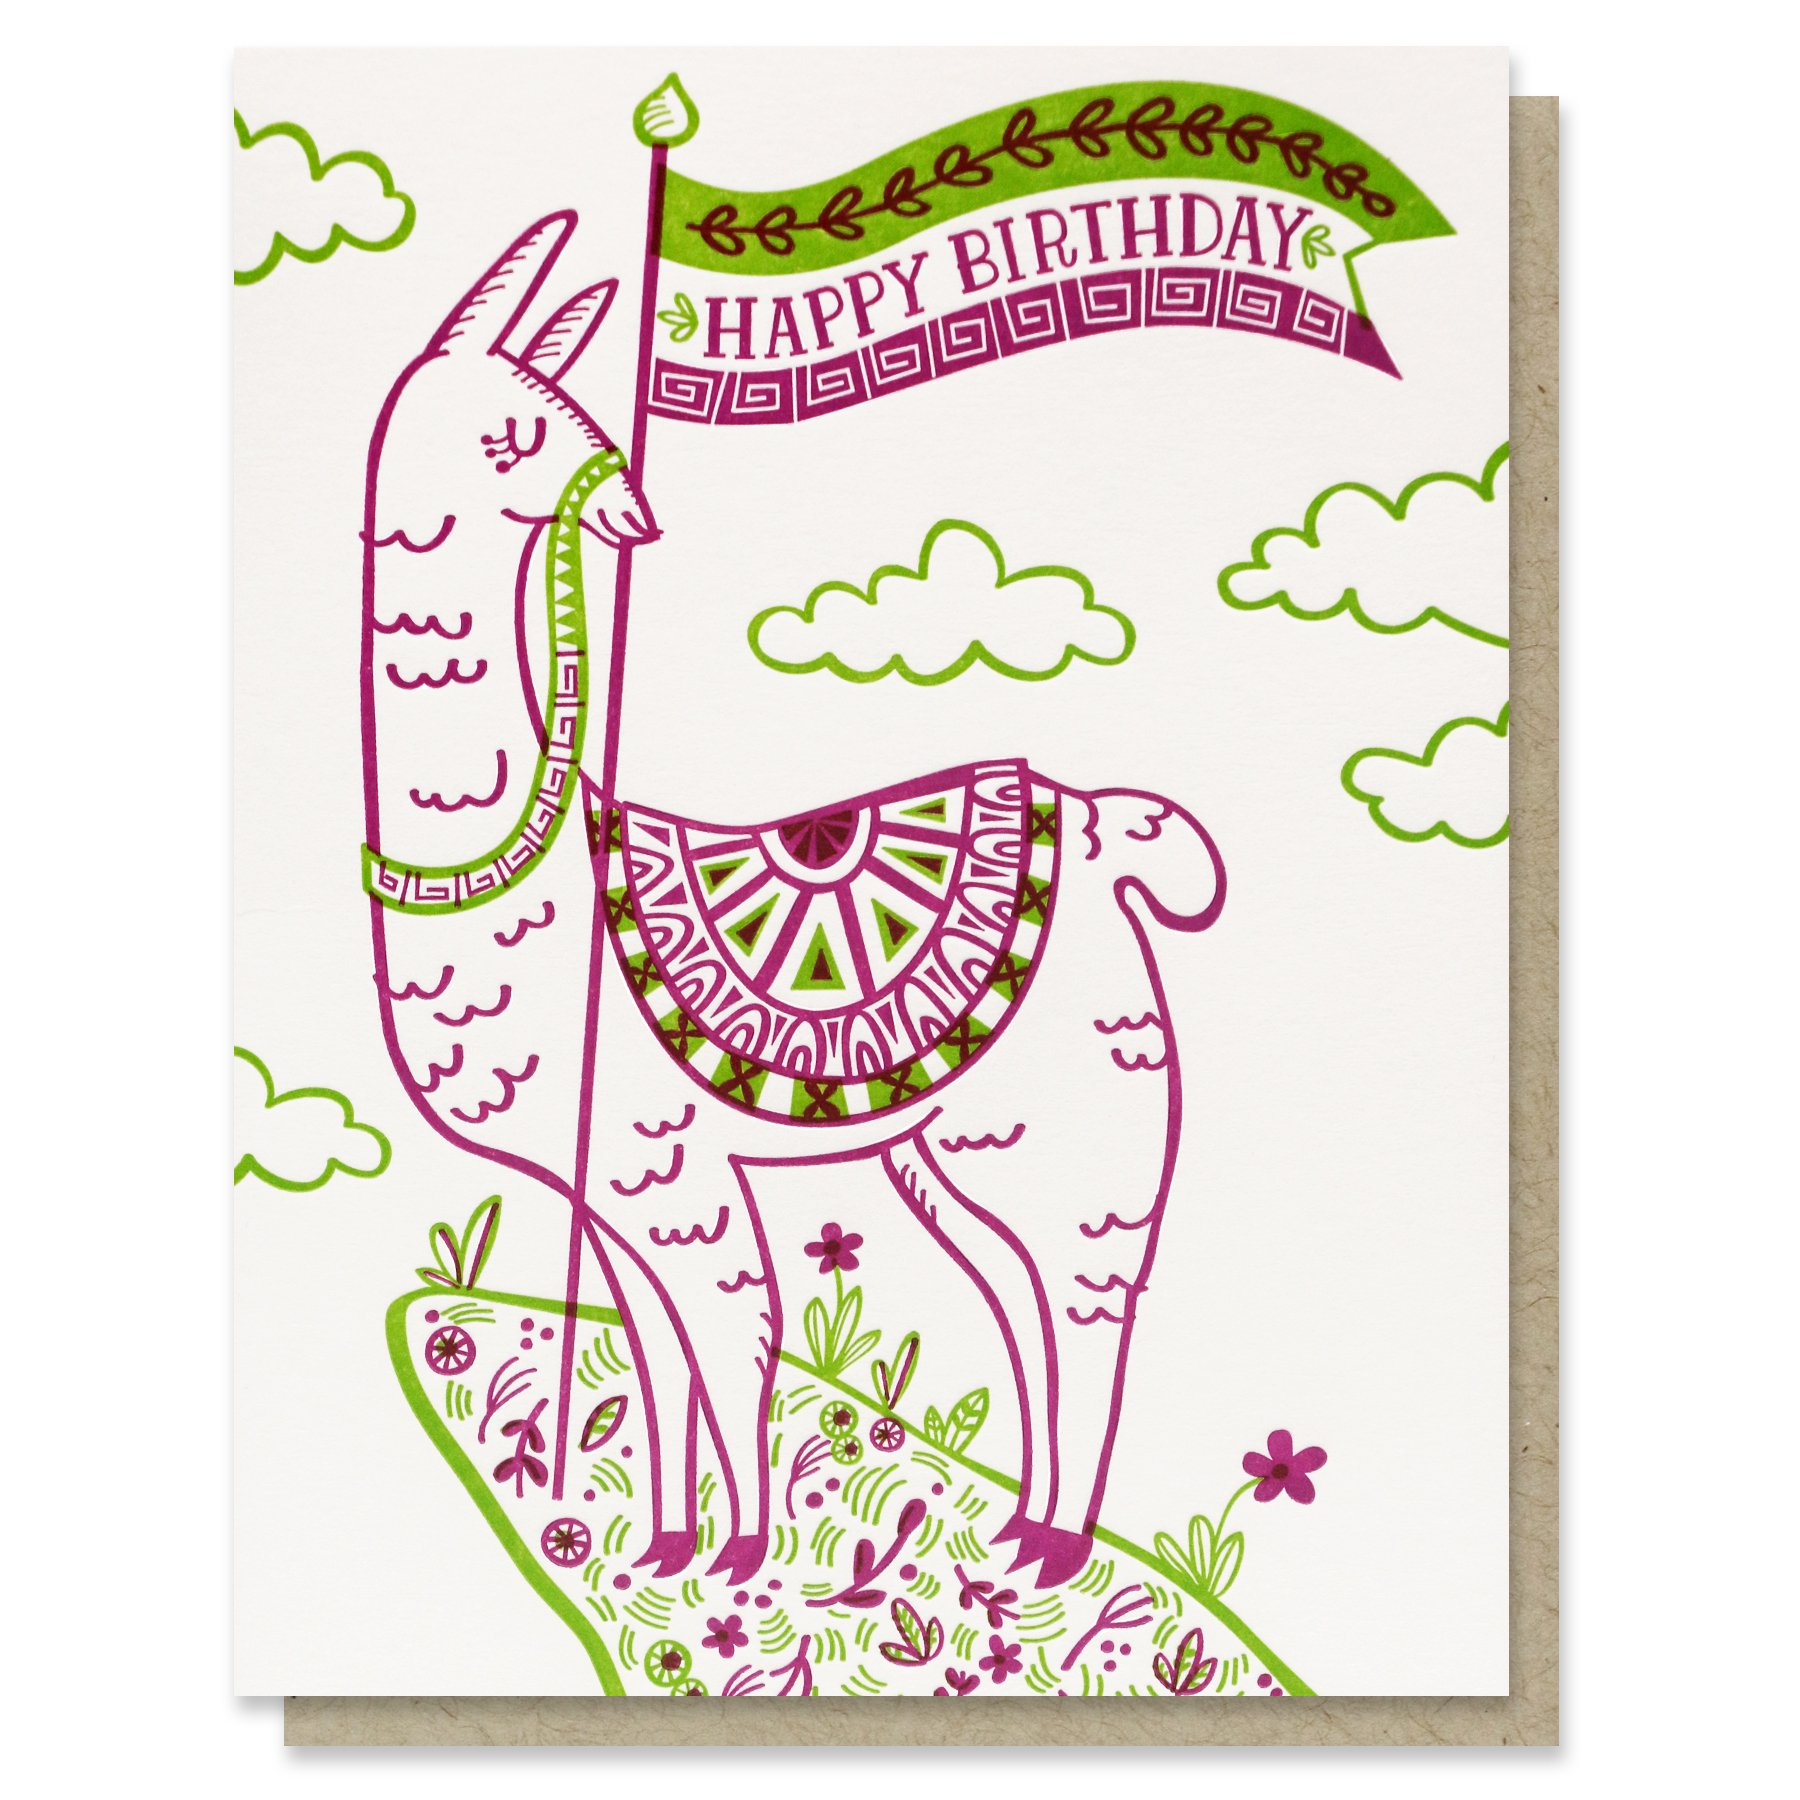 Happy Birthday Llama Card.